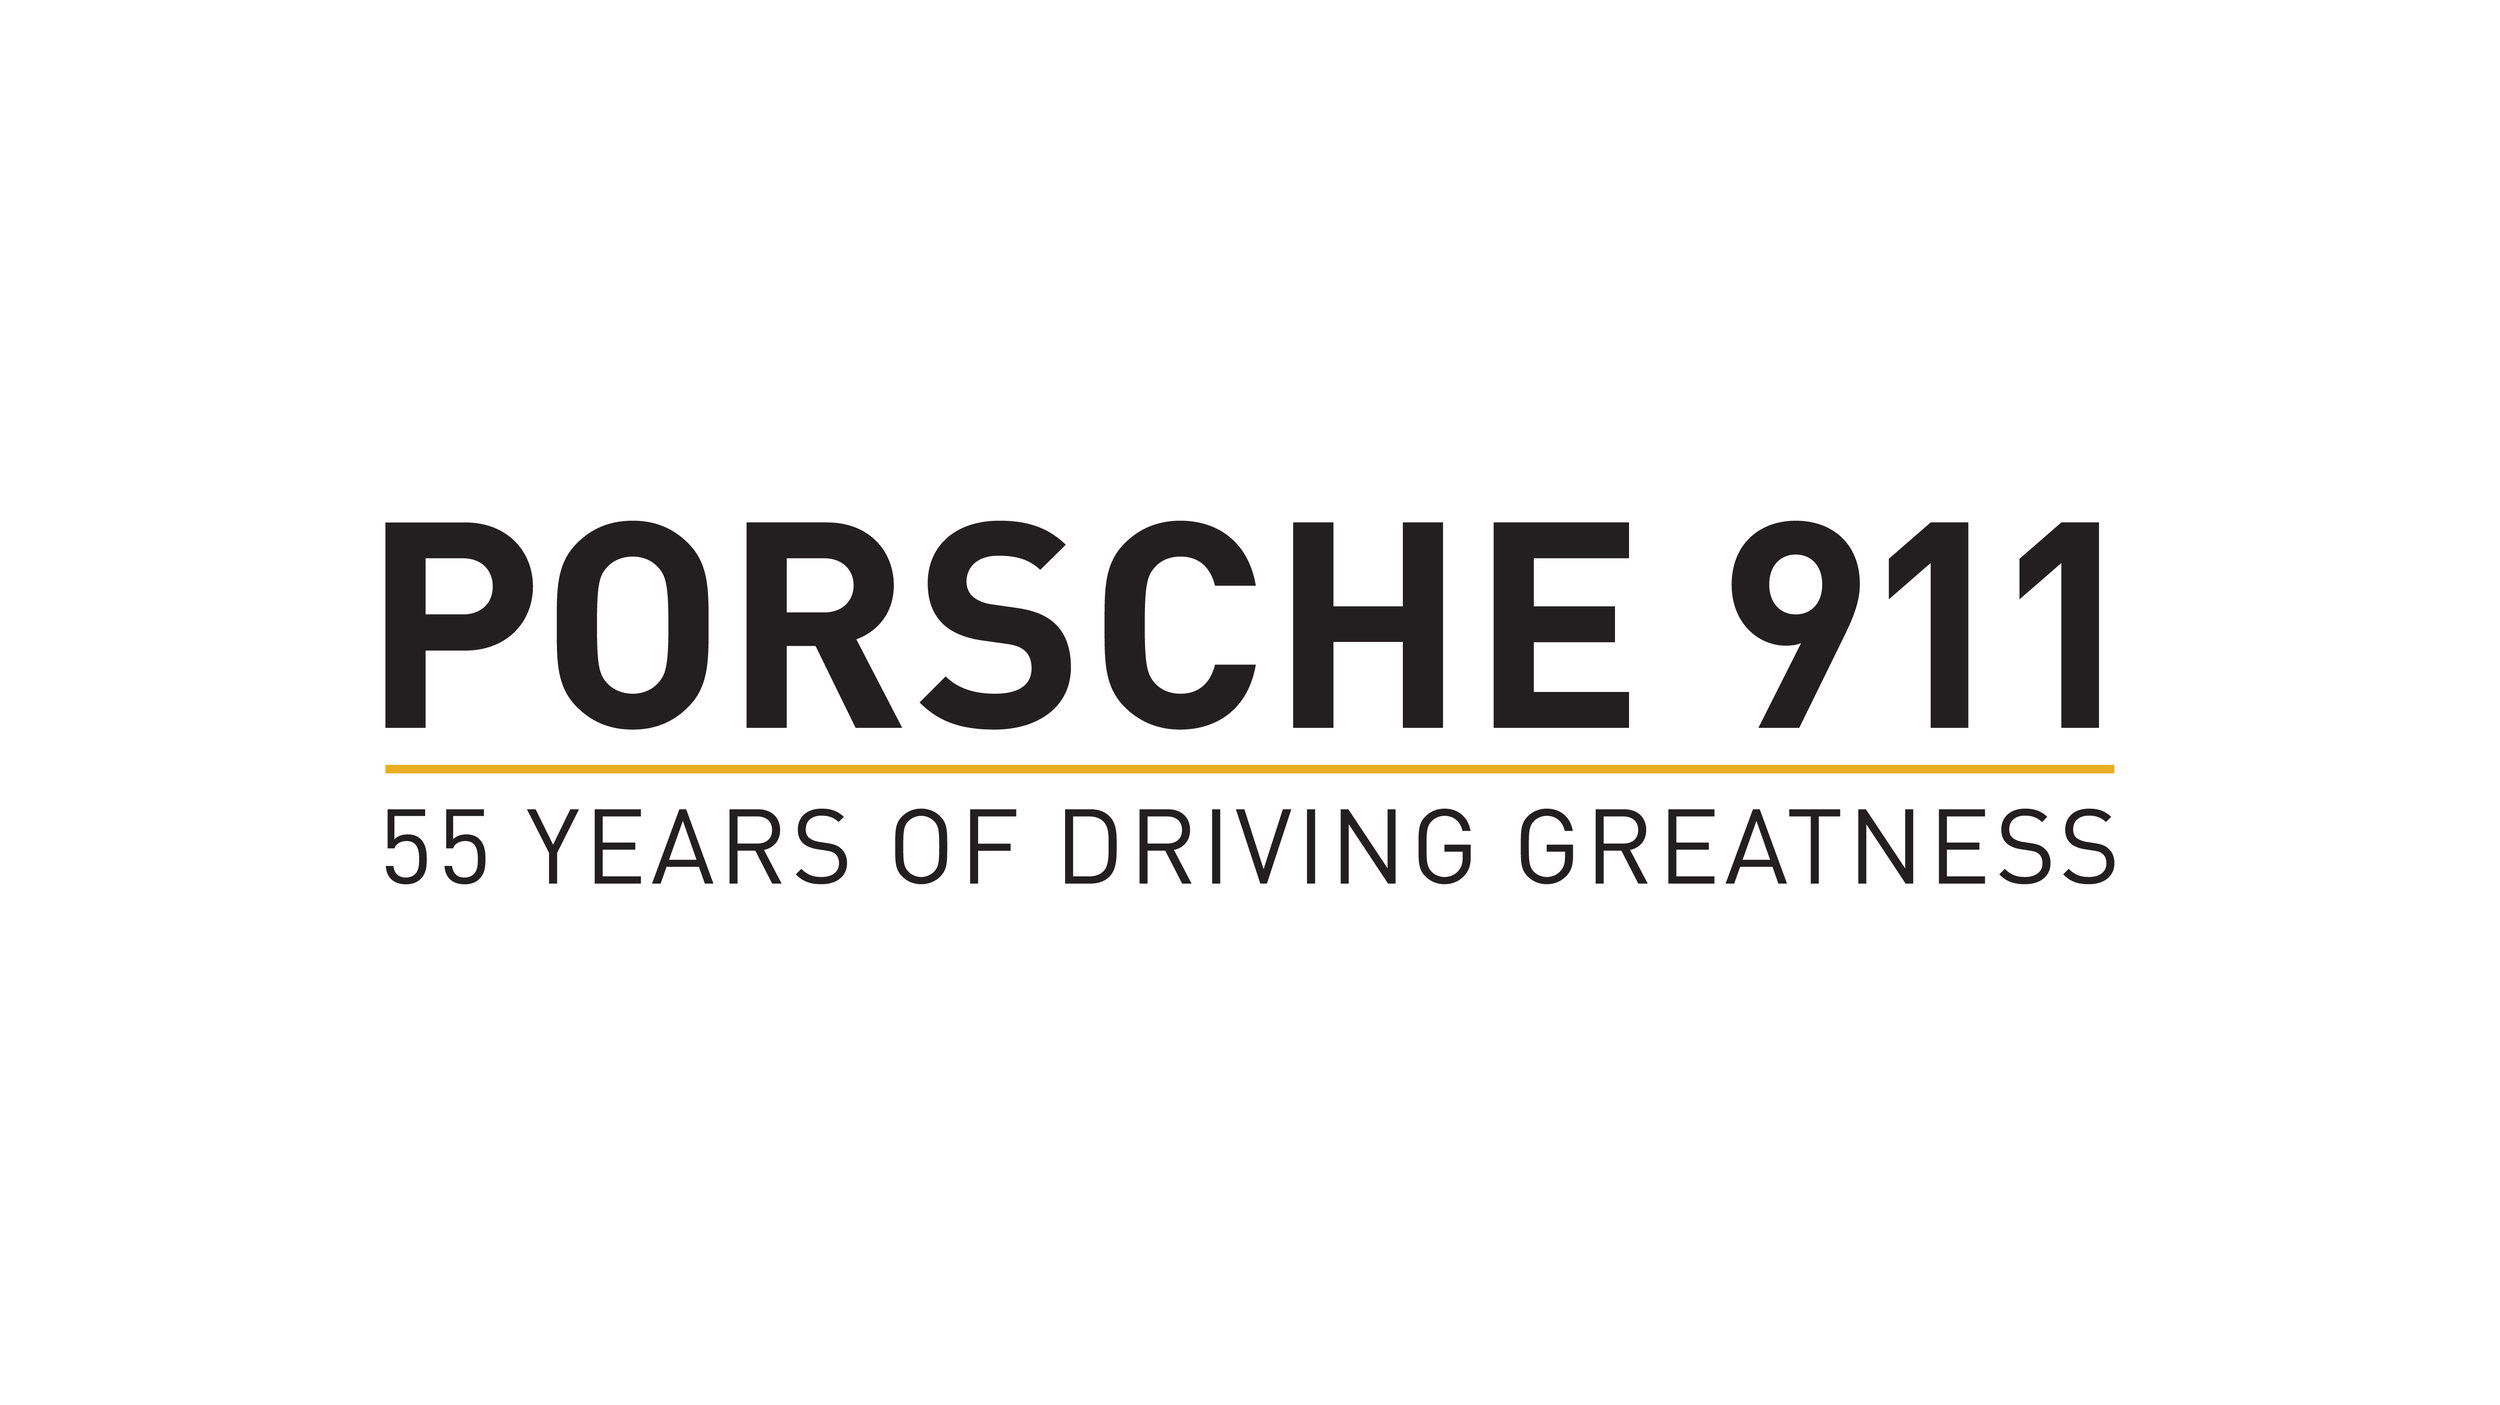 wos_porsche_logo_screen-01 copy.jpg